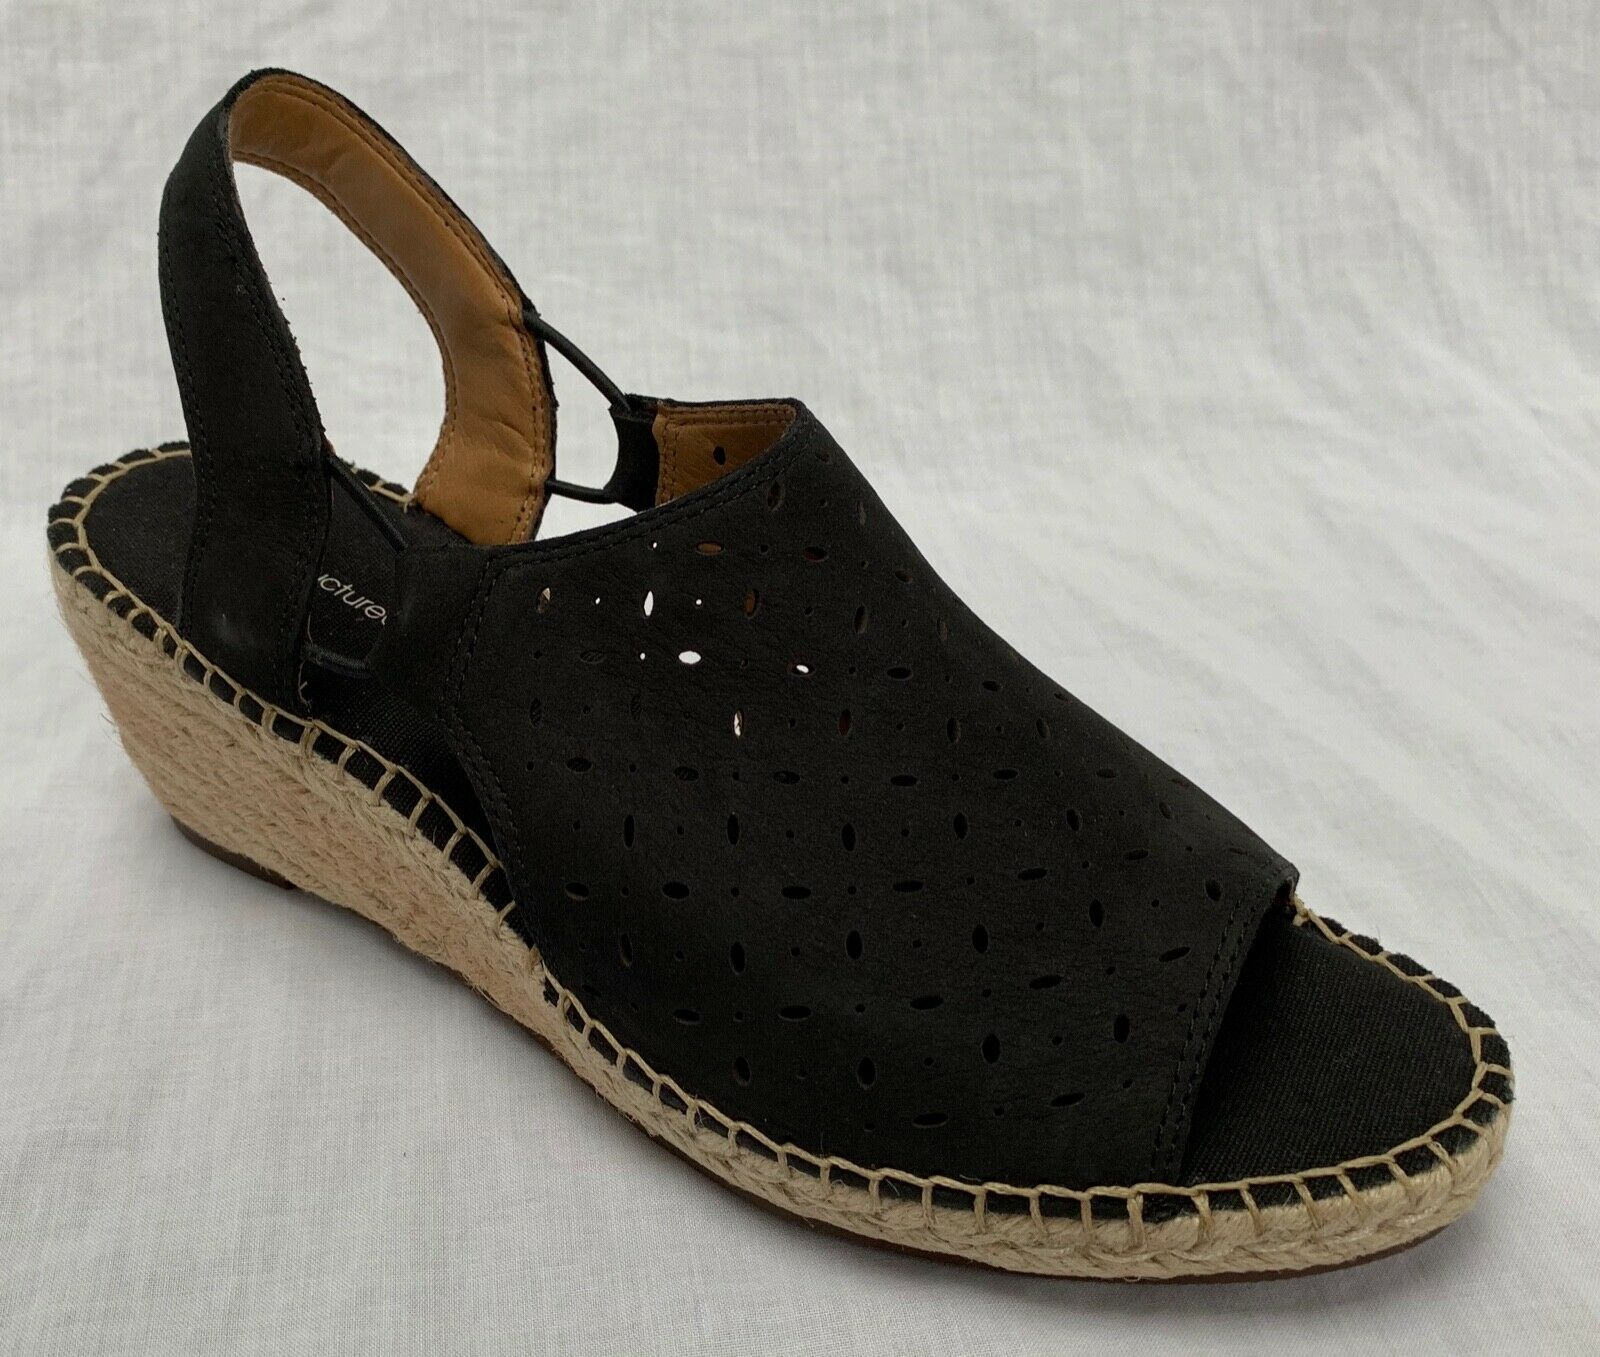 BNIB Clarks Unstructured Ladies Petrina Gail Black Black Black Nubuck Leather Wedged Sandals 91d226